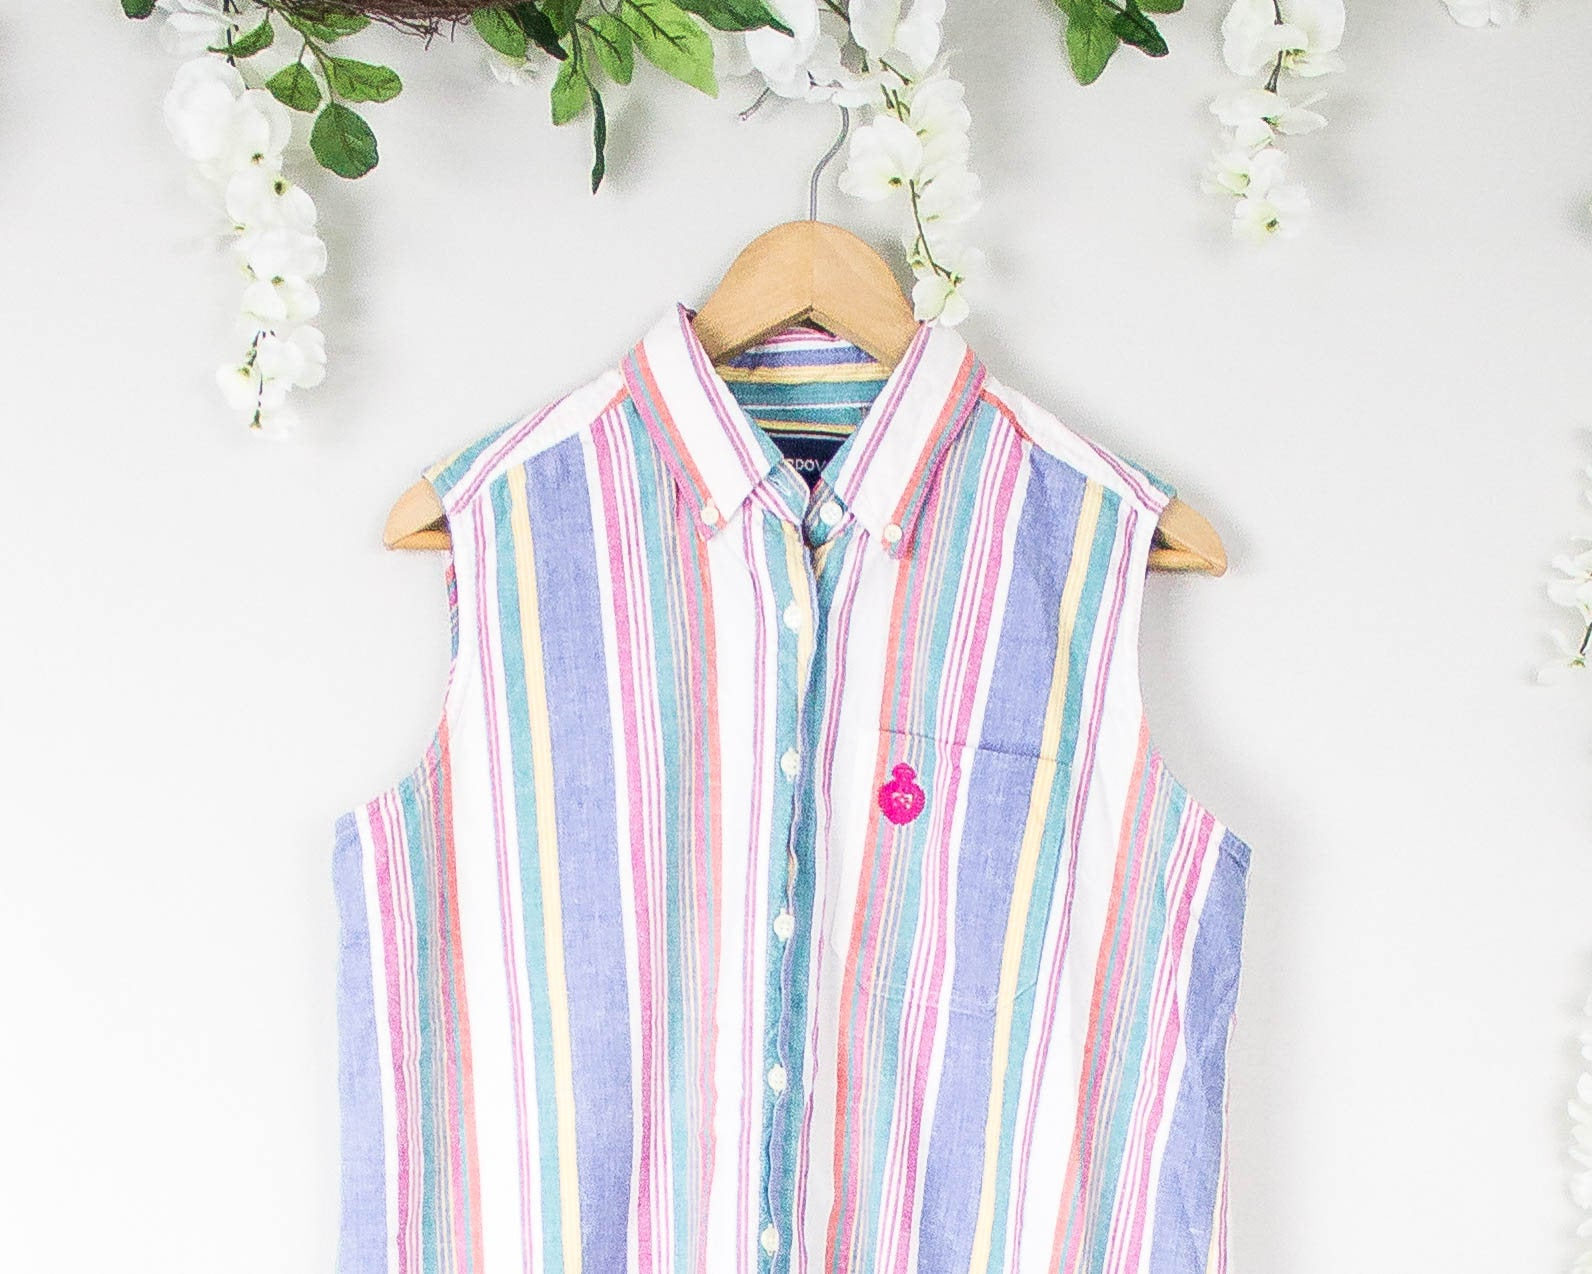 Vintage Striped Sleeveless Blouse